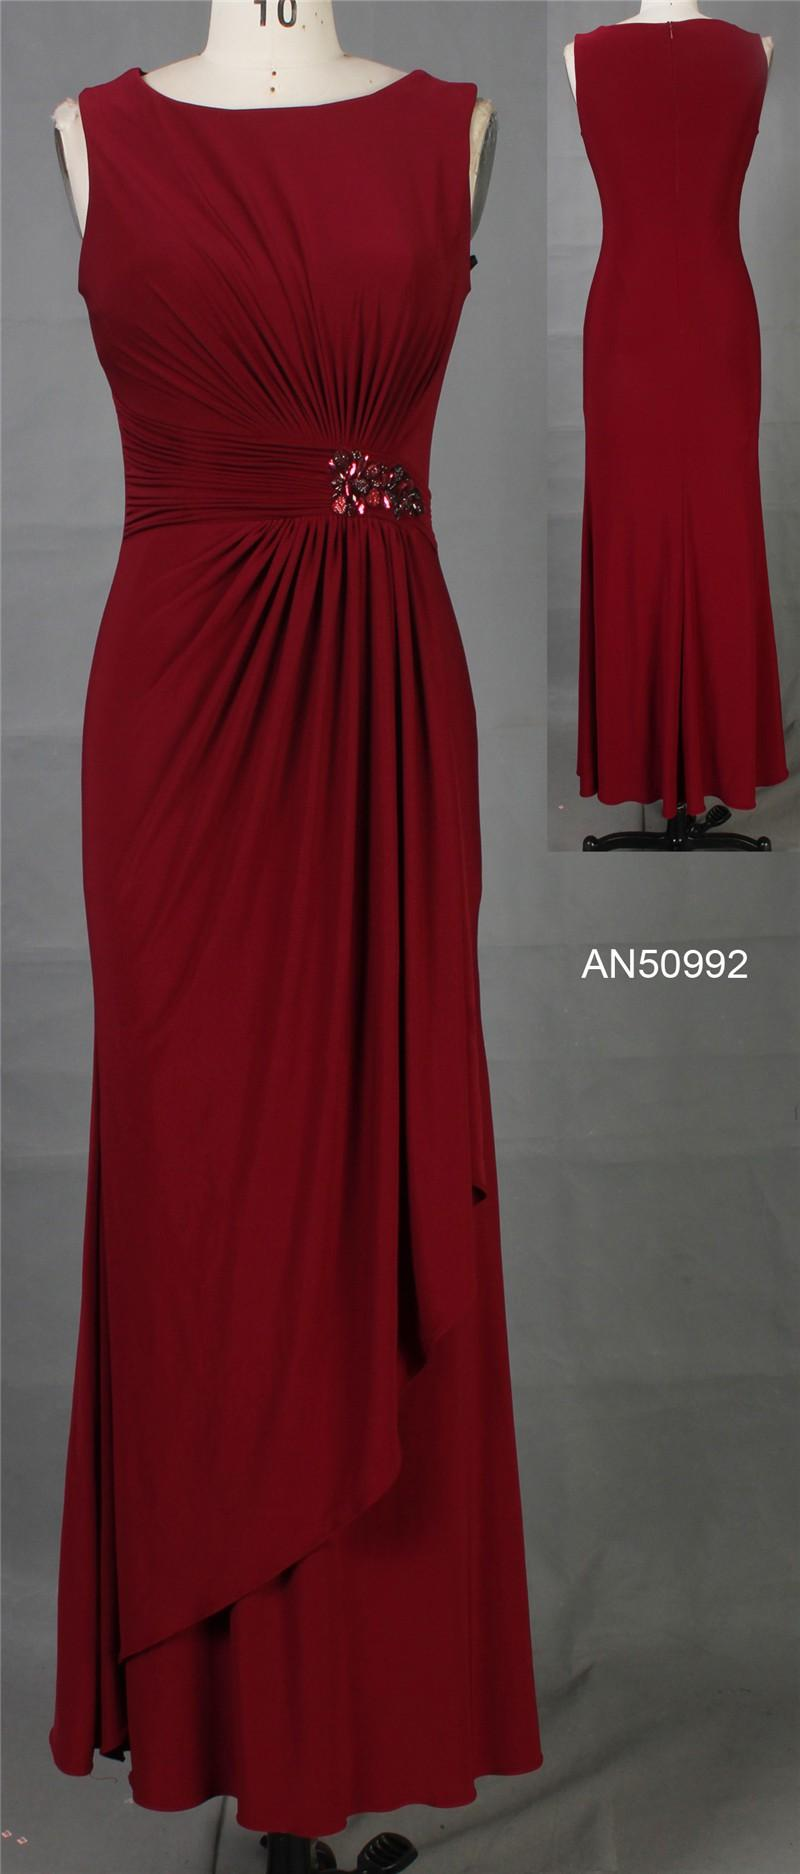 aa8171562b4 Sleeveless special occasion gowns - Darius Cordell Fashion Ltd